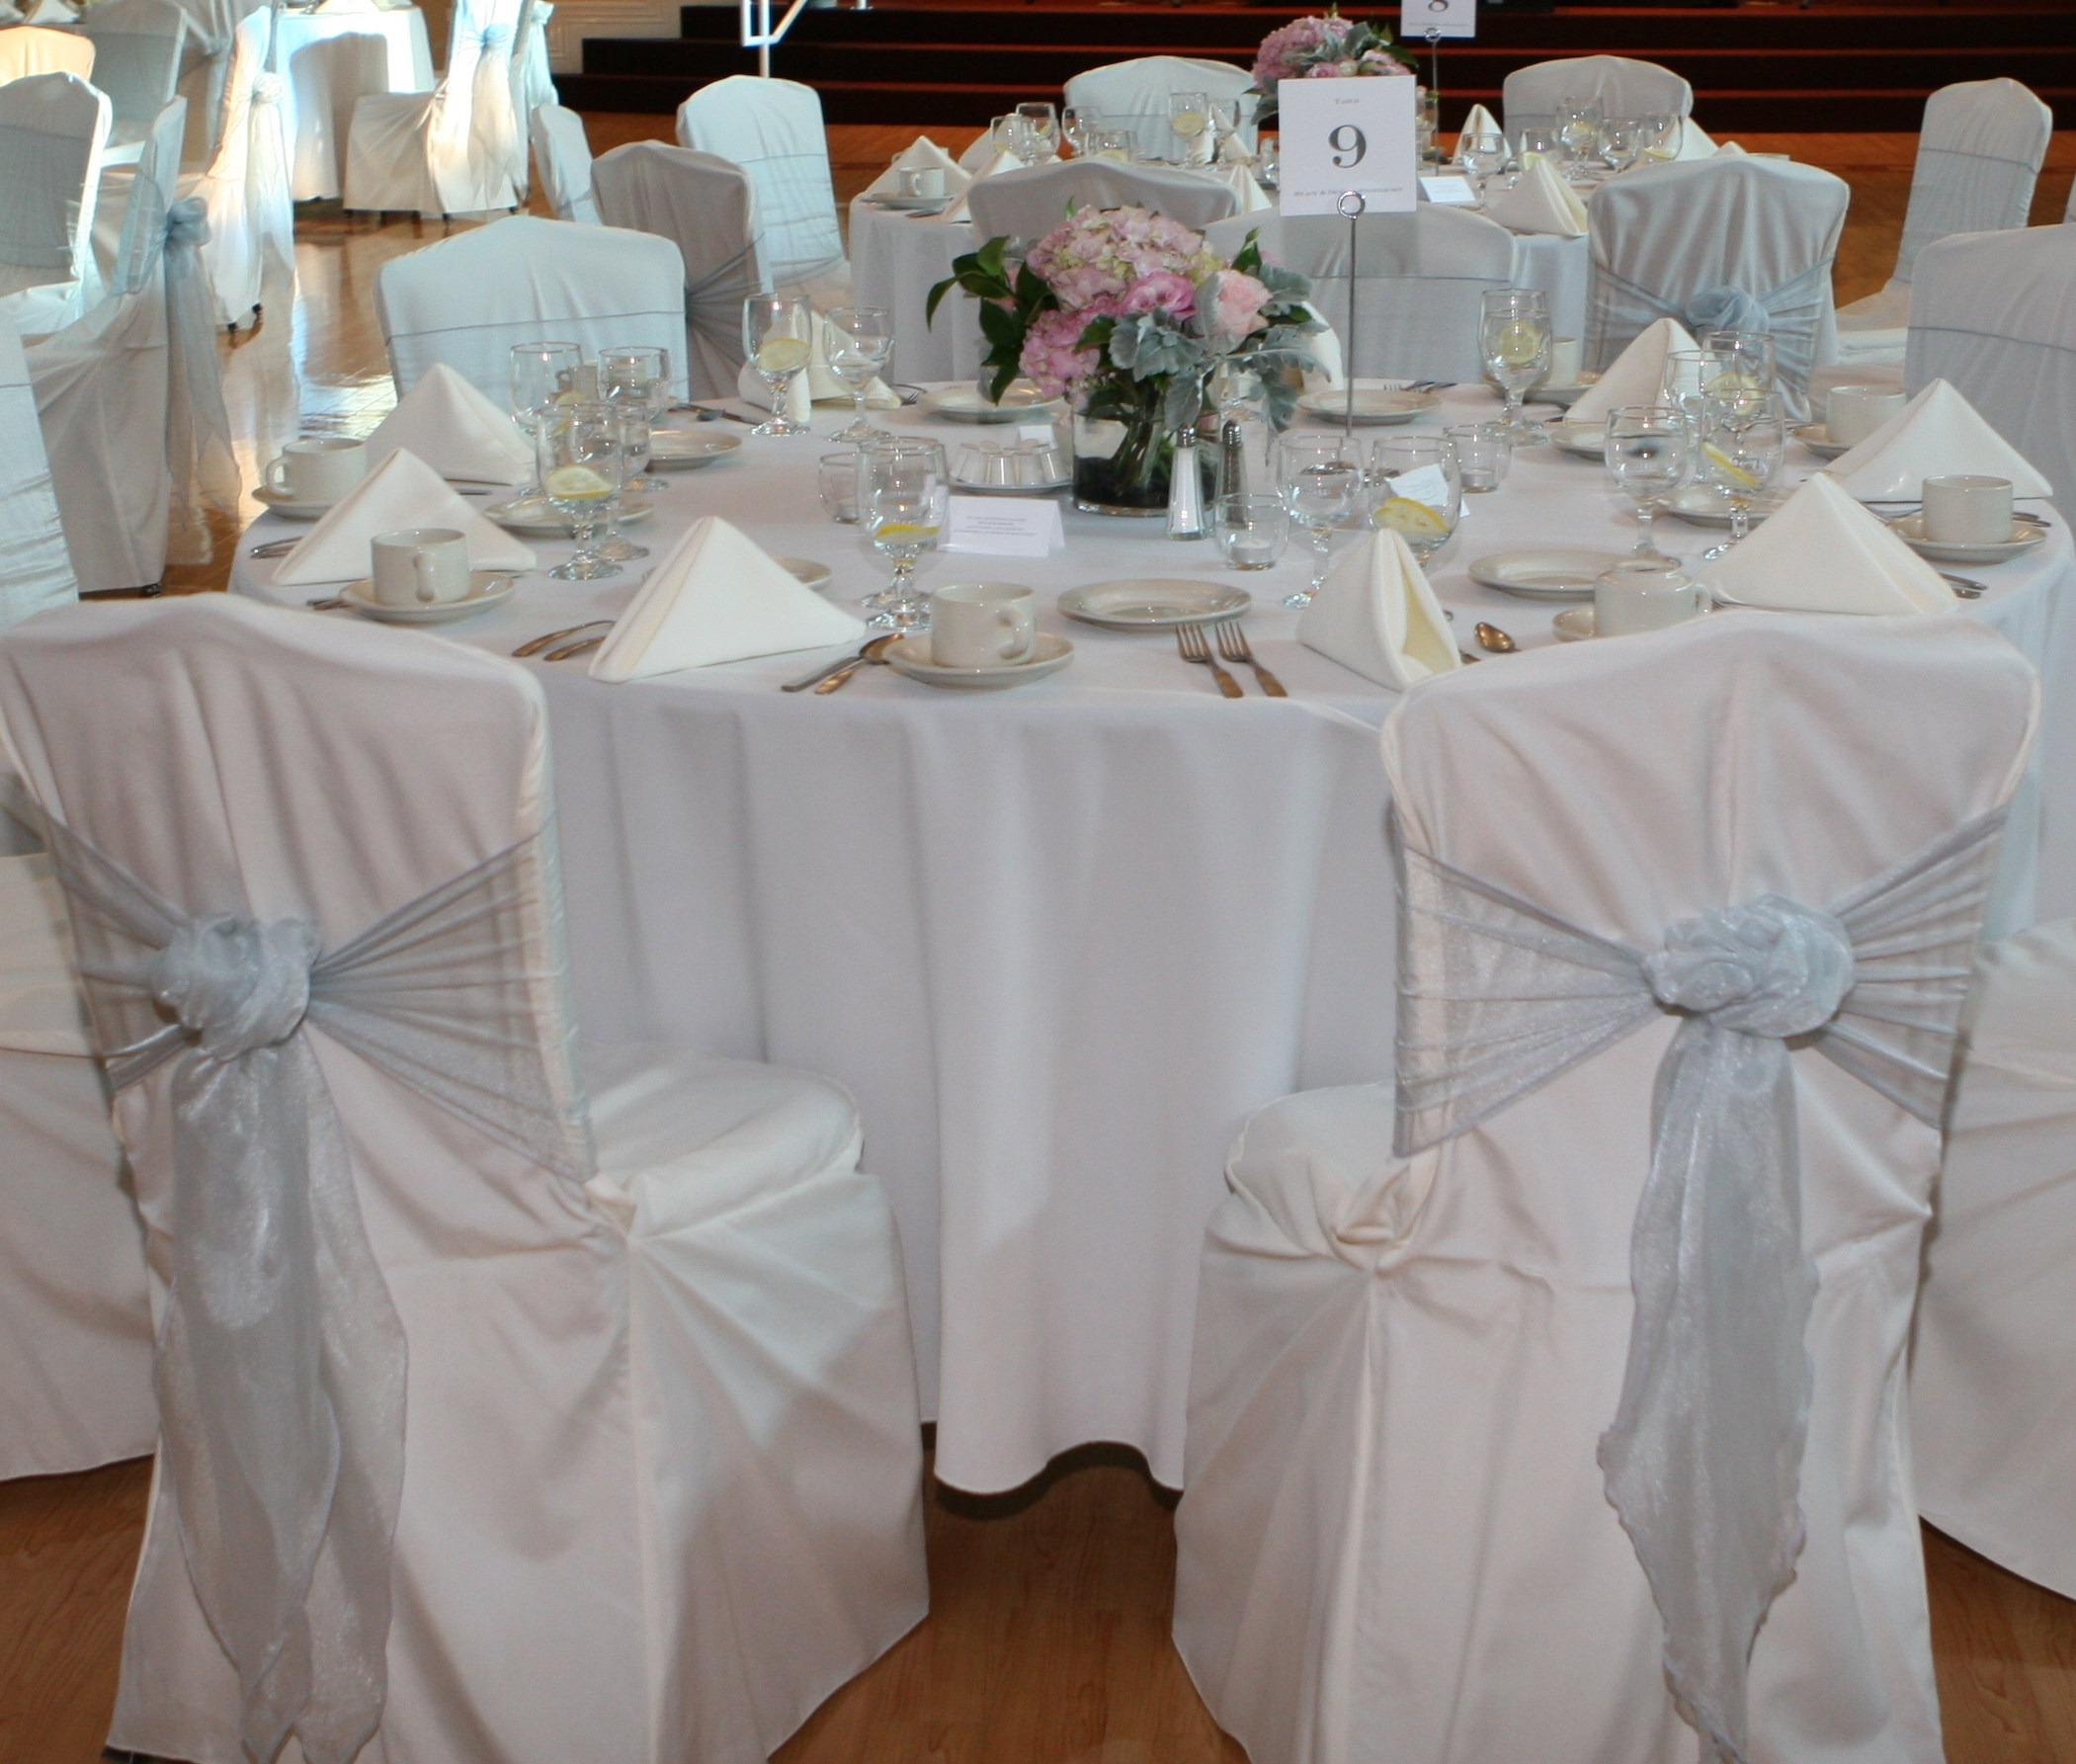 rent tablecloths and chair covers near me contemporary accent chairs for living room party linens llc chicago illinois il localdatabase